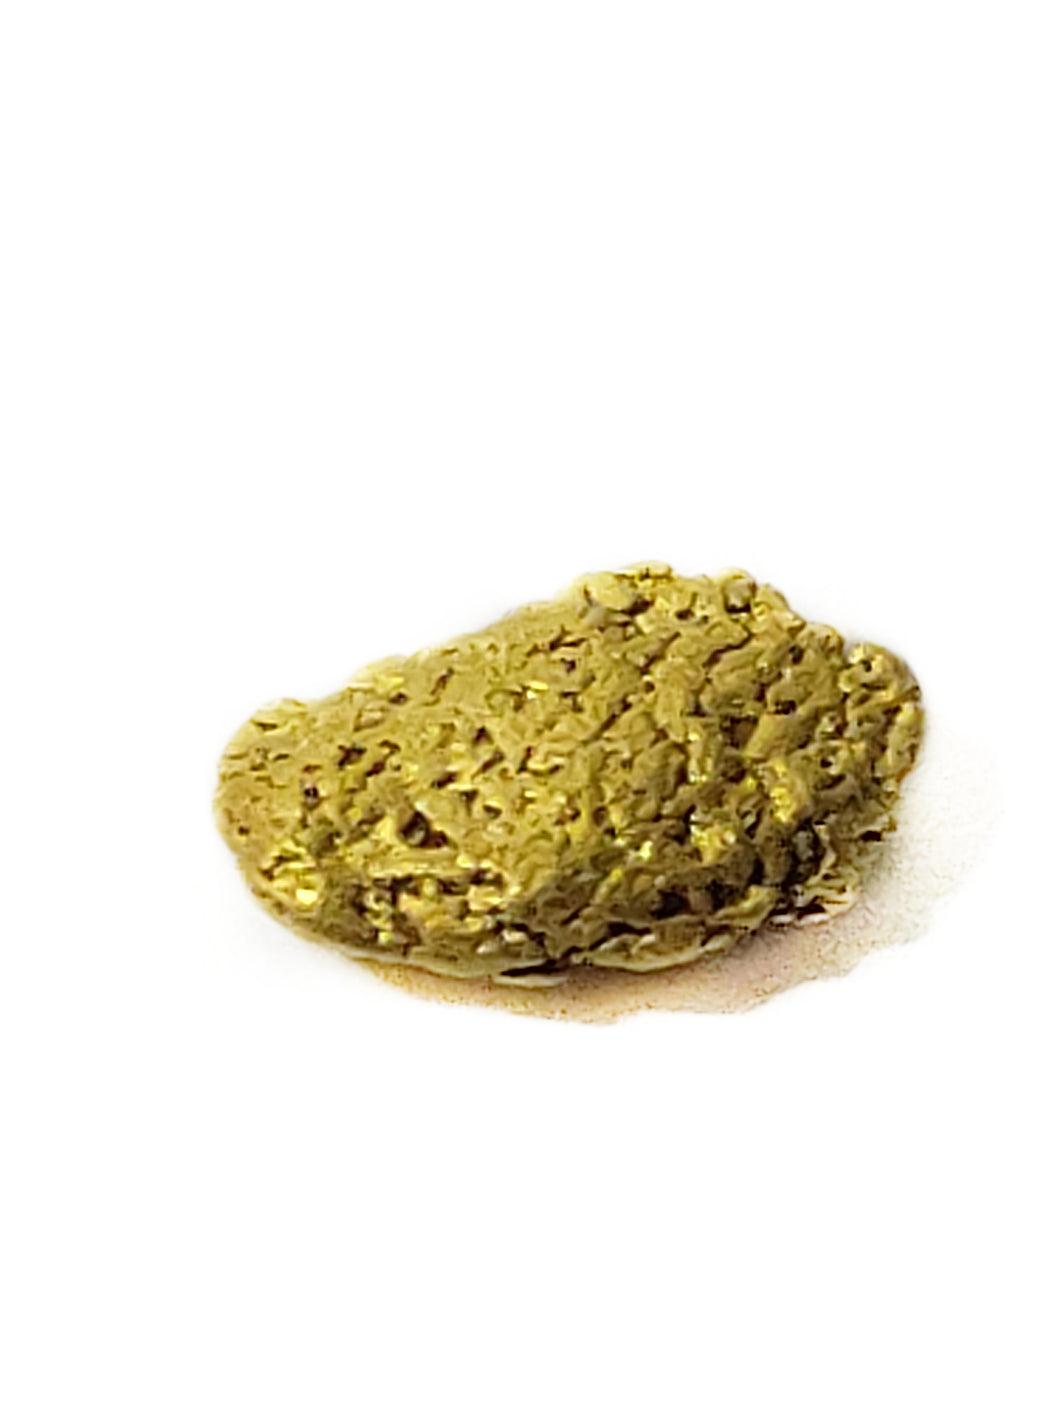 Maryborough Victoria Gold Nugget 1.167g